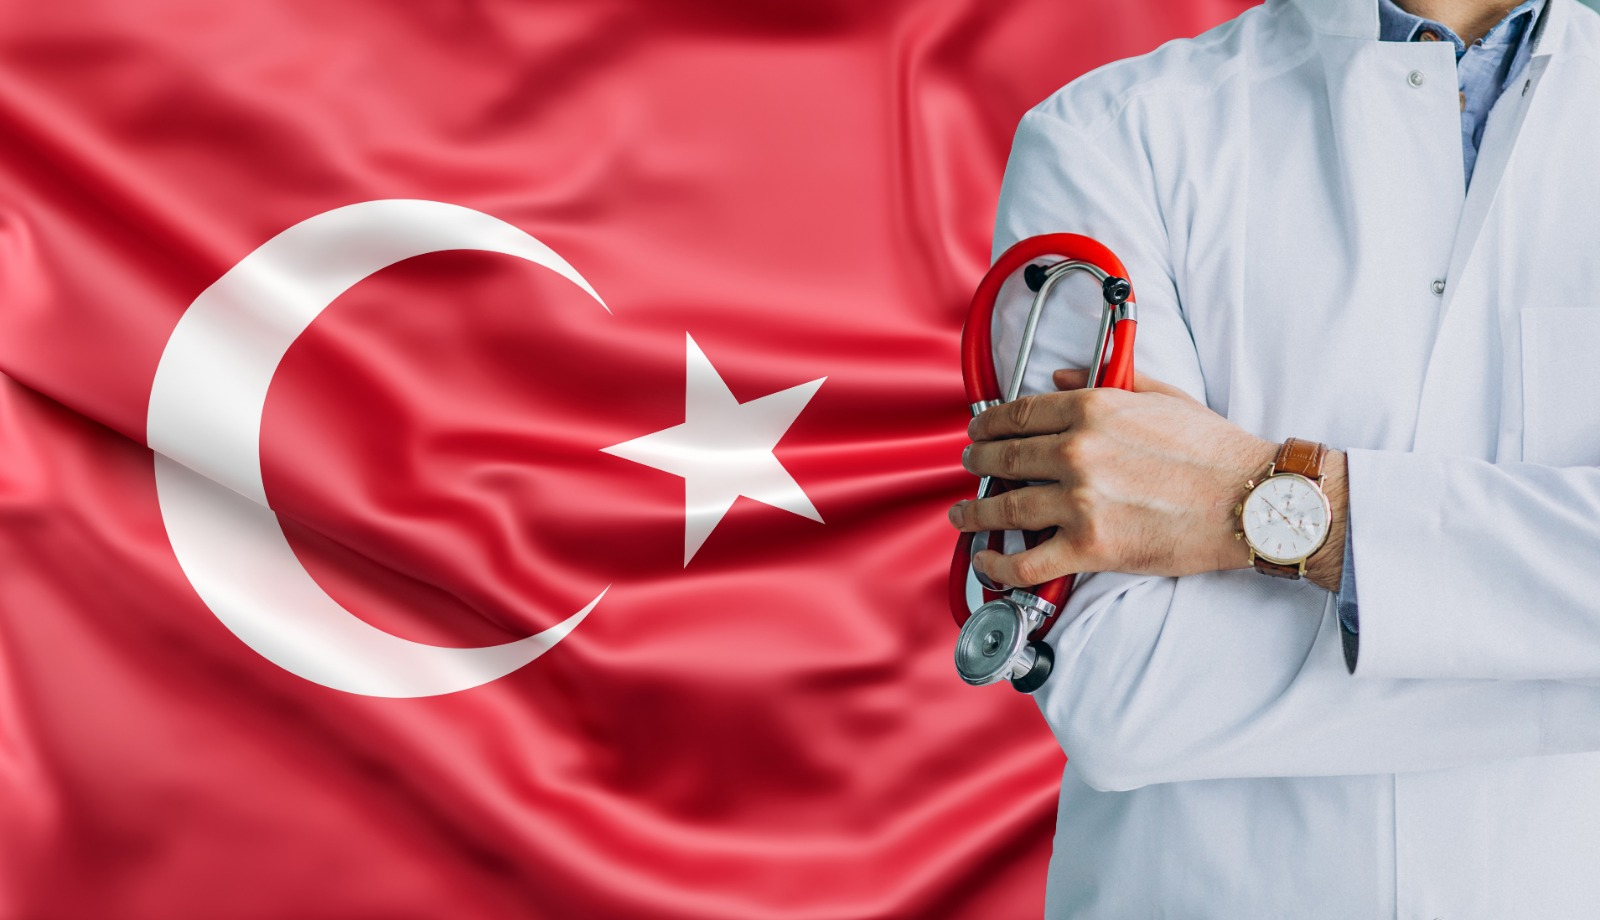 Growth of healthcare and medical field in Turkey